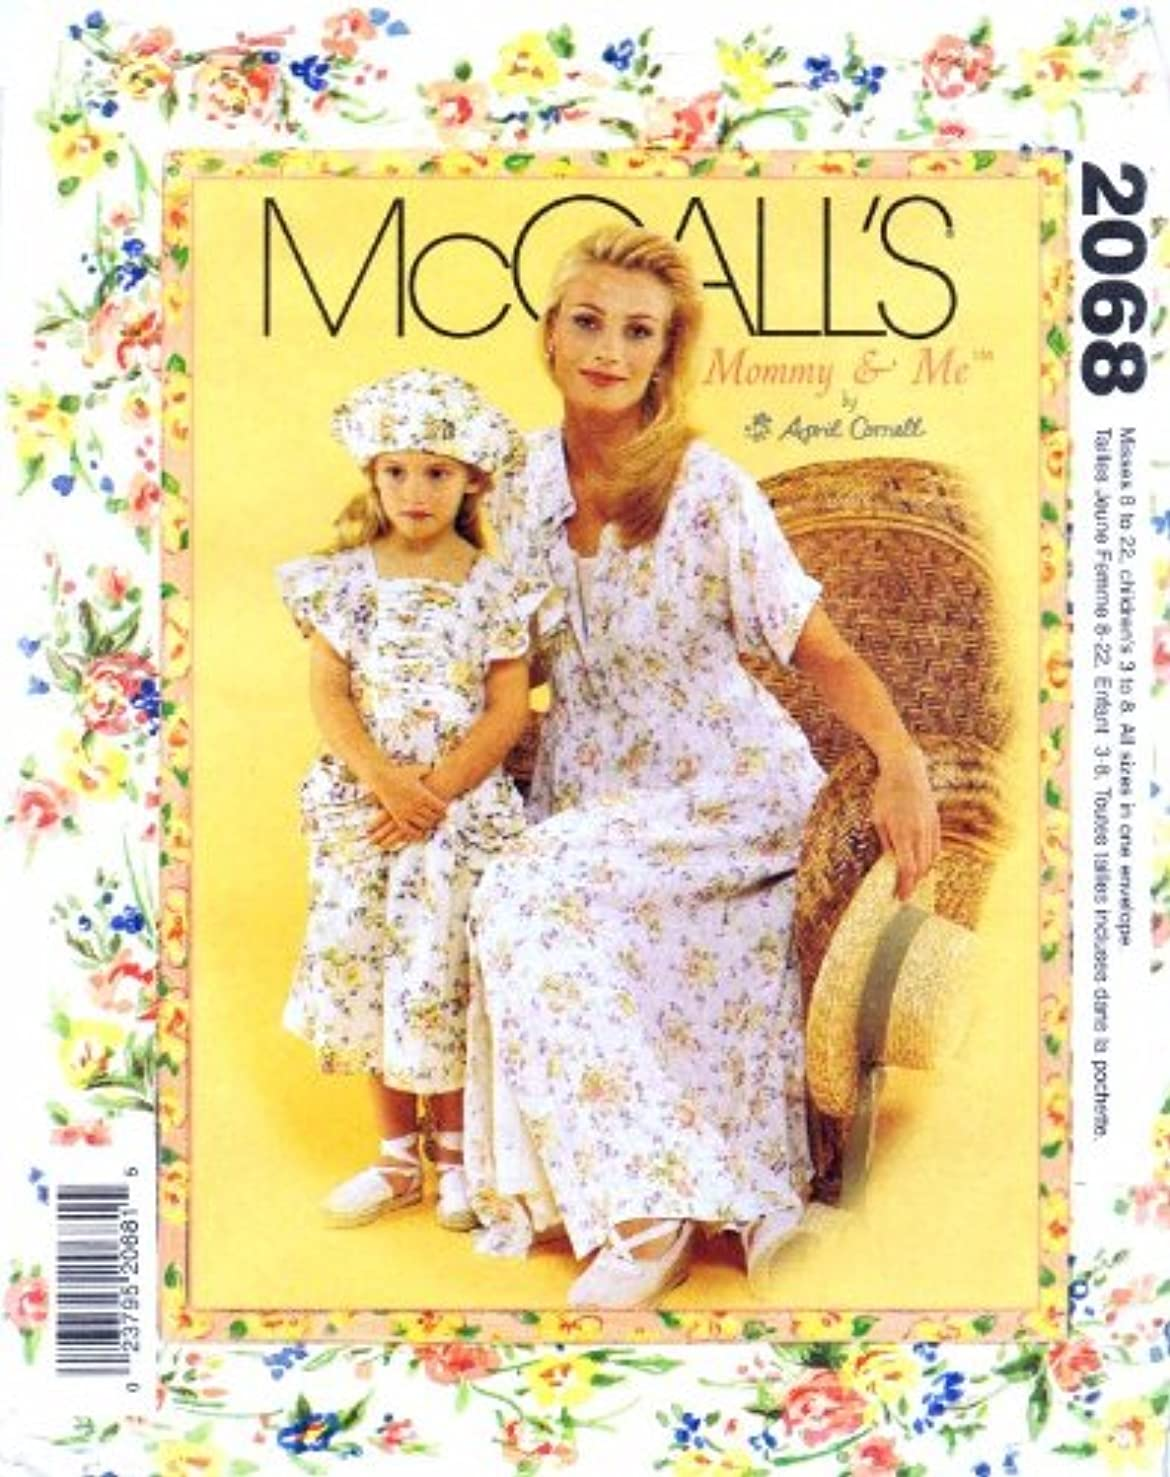 McCall's Mommy & Me Pattern 2068 Misses' Dress and Slip and Girls' Dress, Hat and Ba